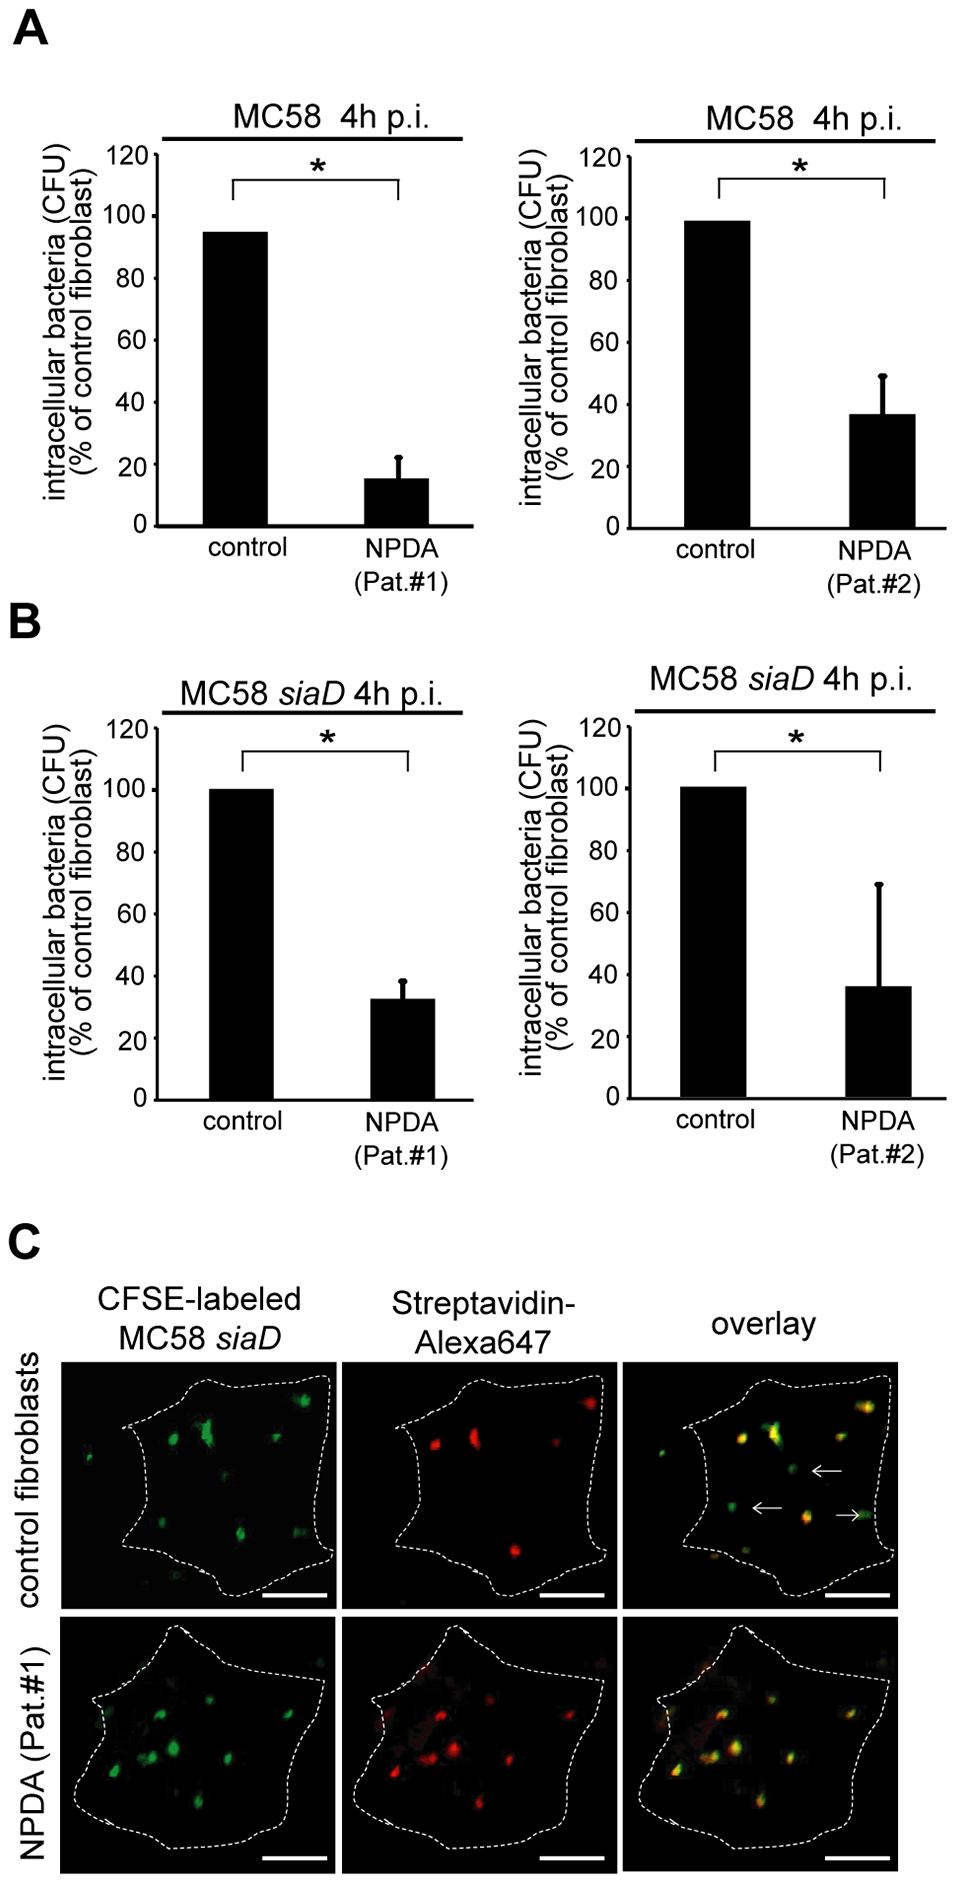 Niemann-Pick disease fibroblasts are significantly less invaded by <i>N. meningitidis</i>.